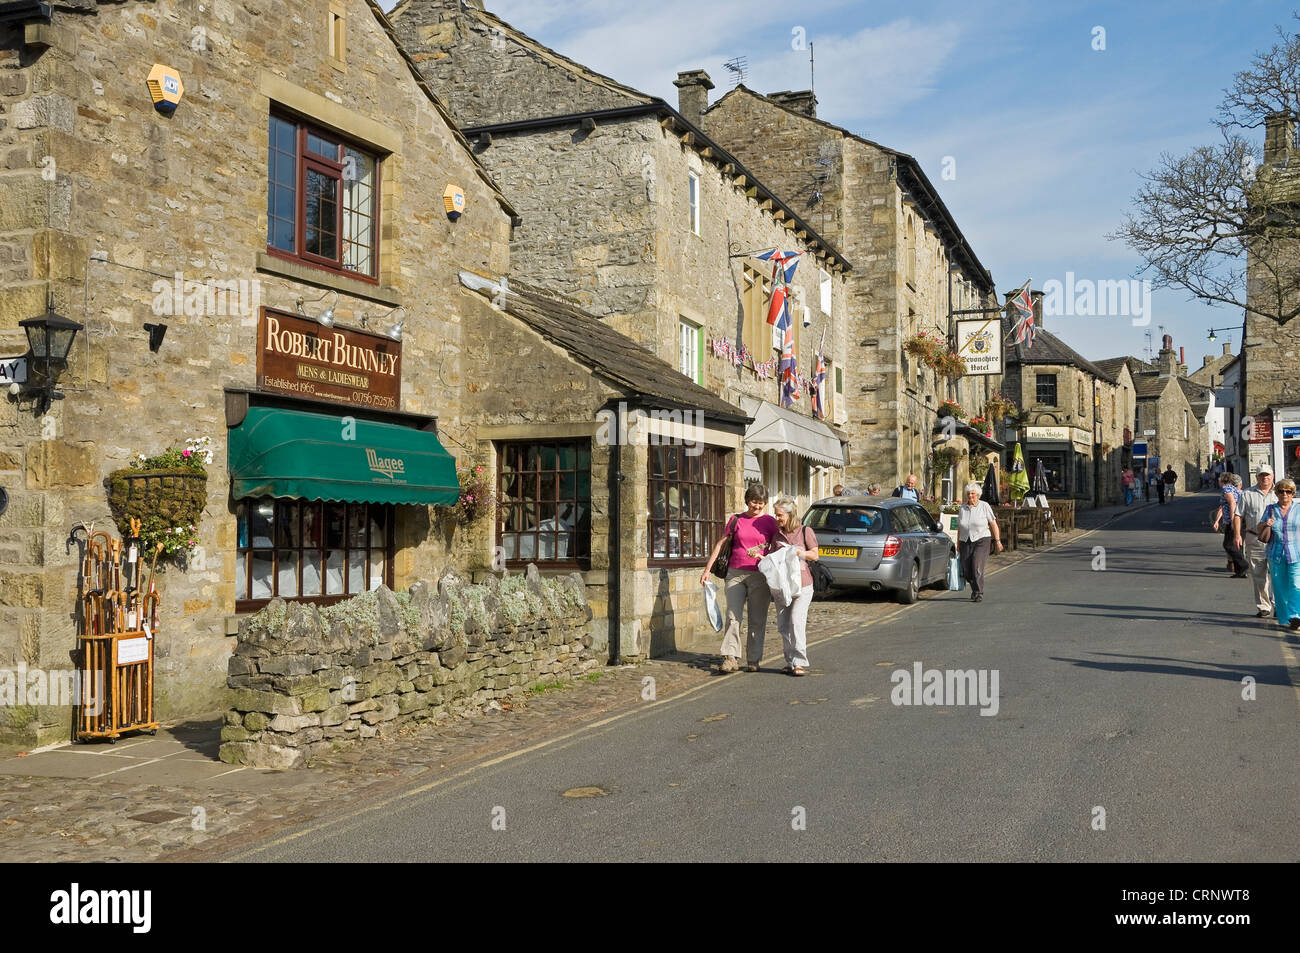 People walking through the small market town of Grassington, the main tourist centre in Upper Wharfedale. Stock Photo